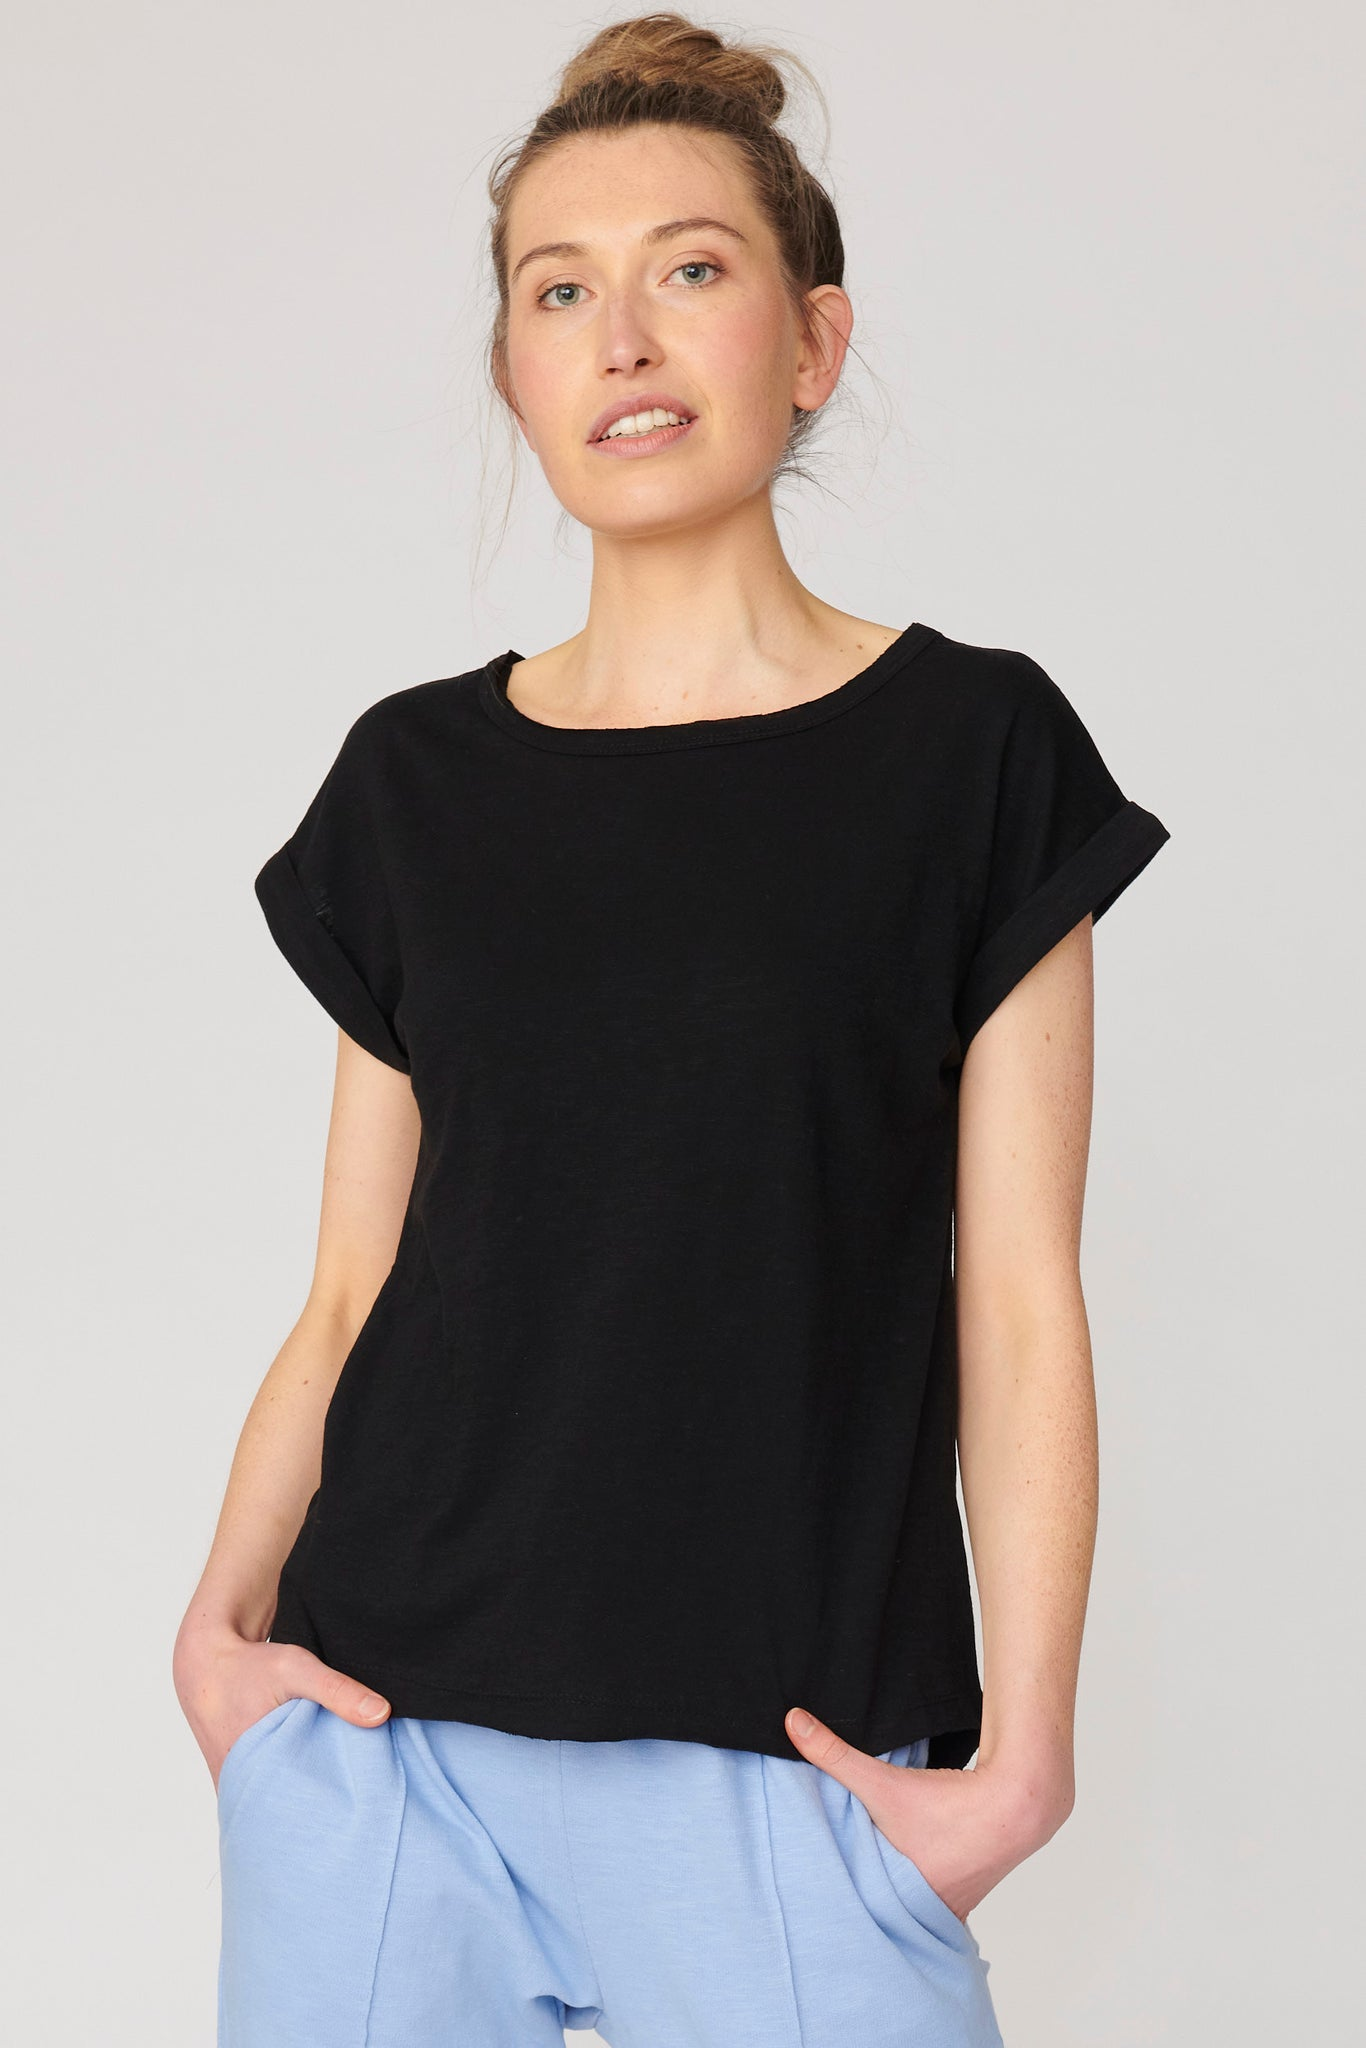 Lulu Organic Cotton Essentials - Santa Barbara Round Neck Tee Black